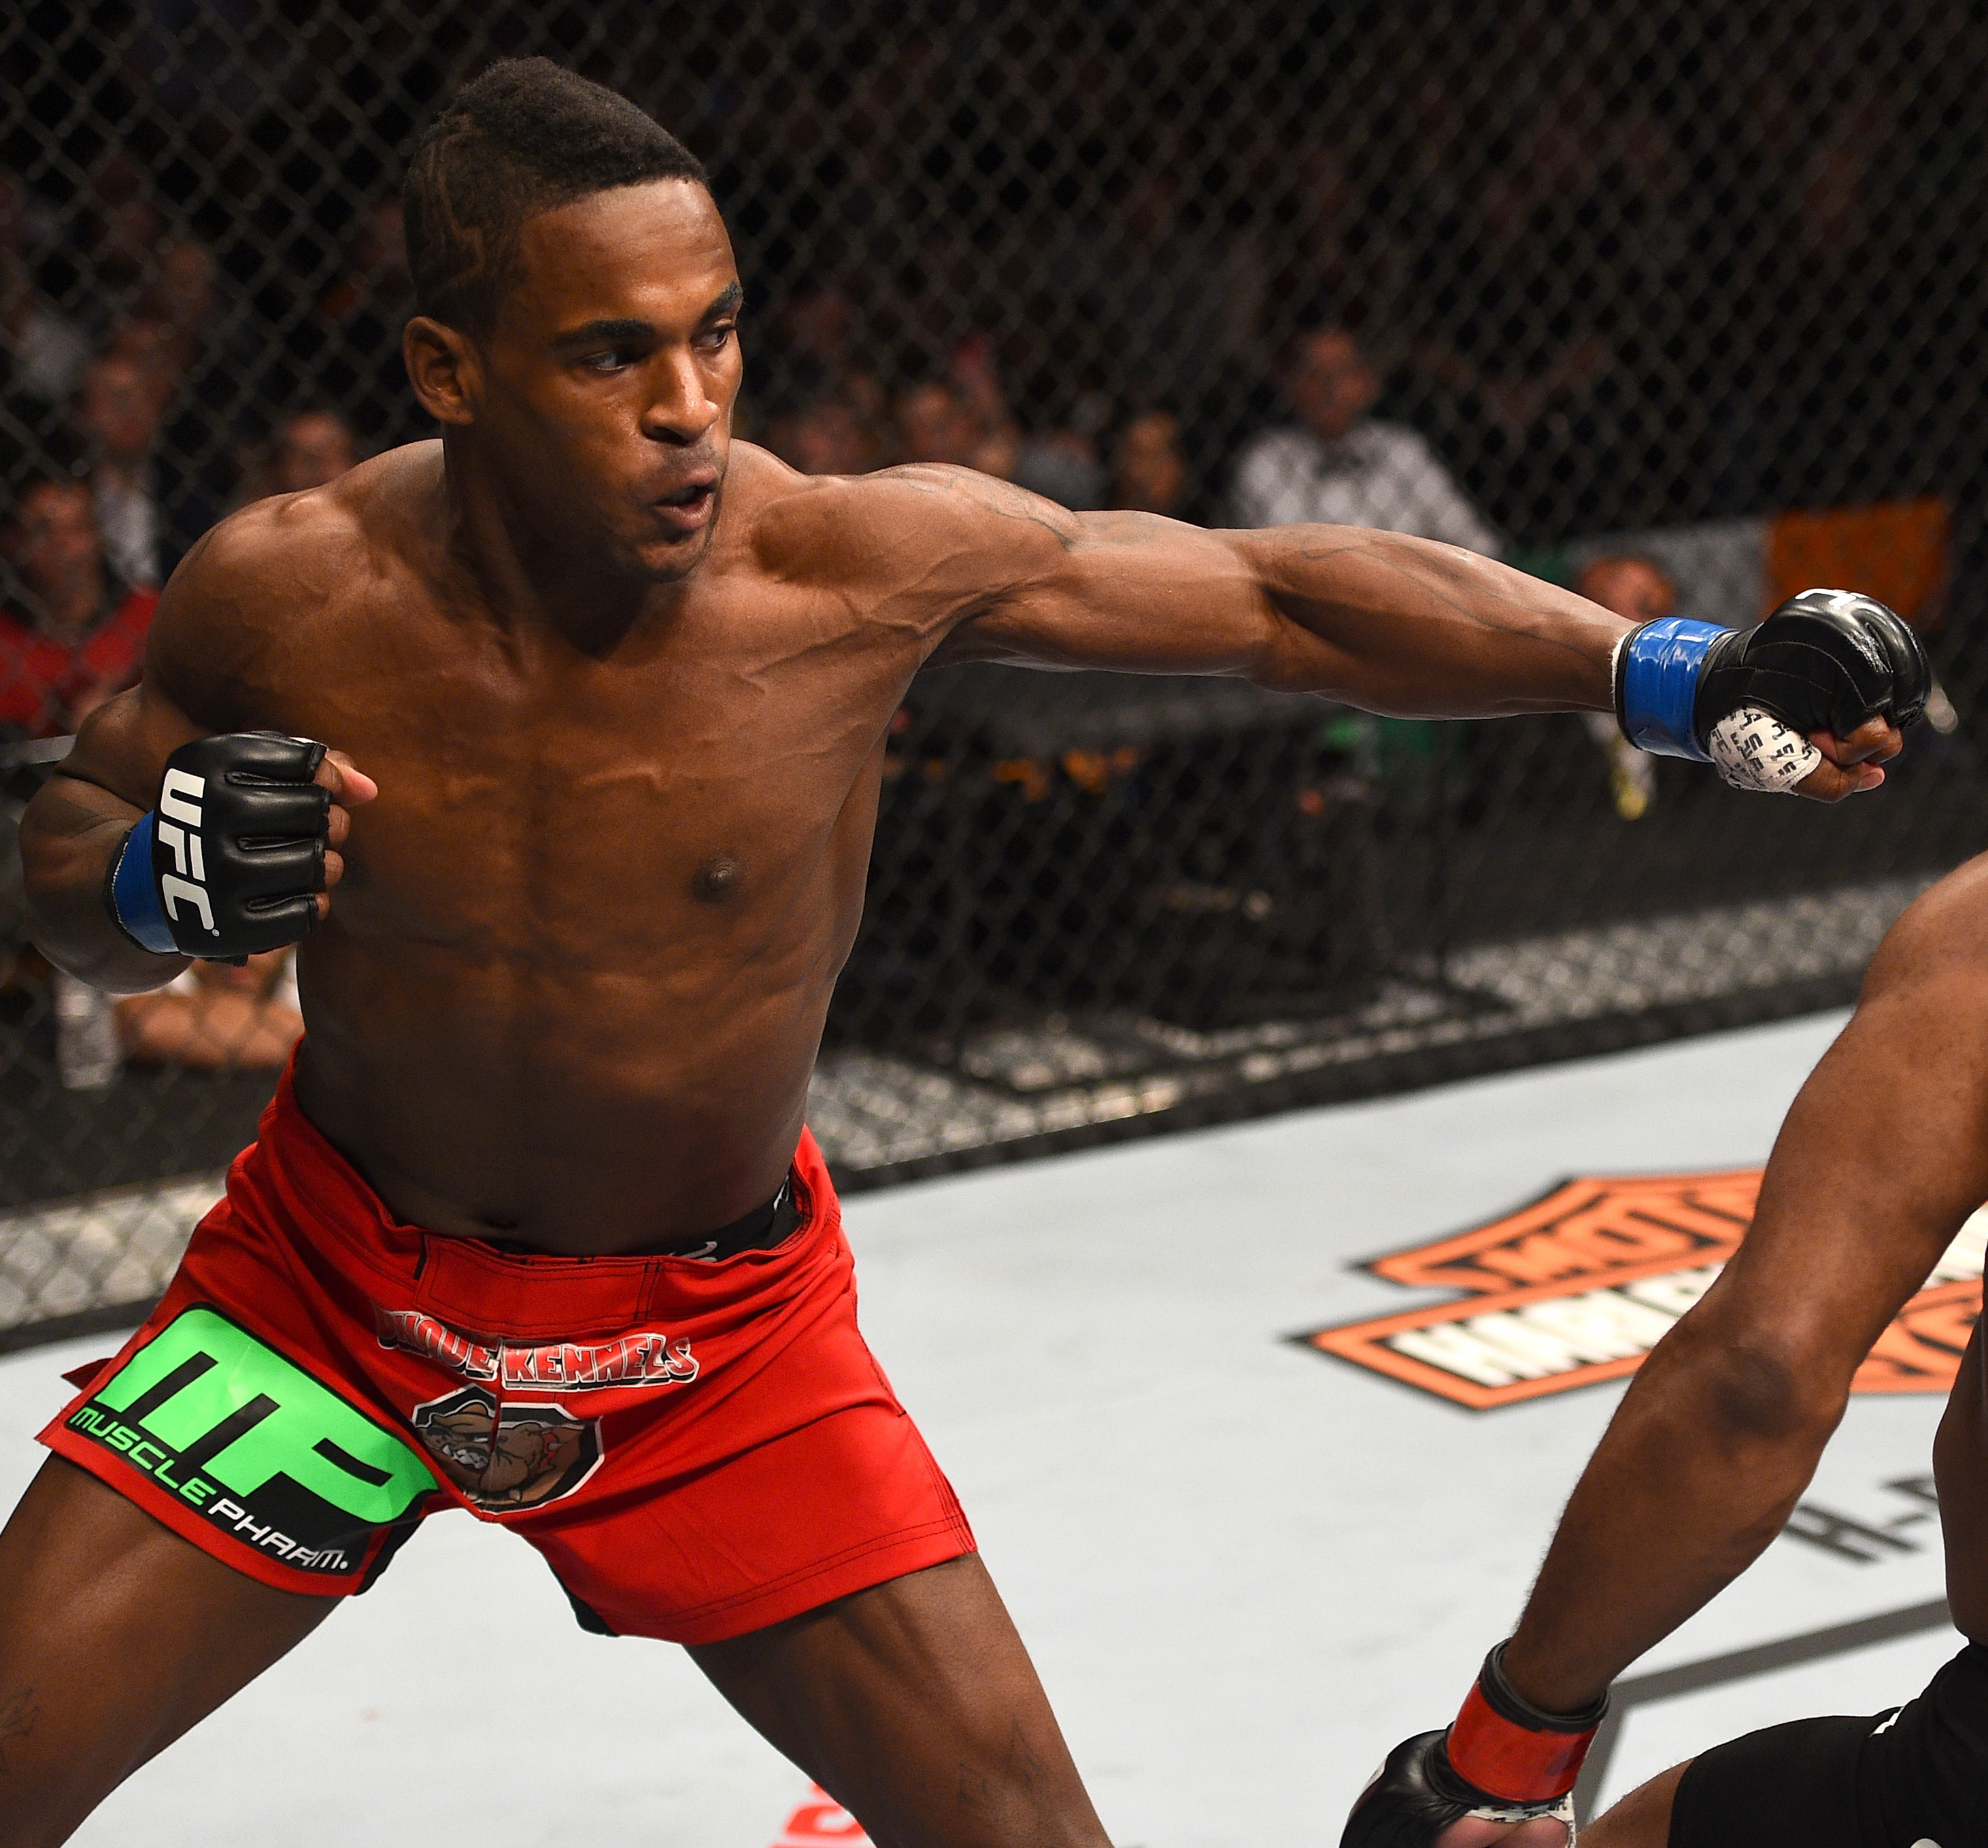 (L-R) Lorenz Larkin punches John Howard in their welterweight fight during the UFC Fight Night event at the TD Garden on January 18, 2015 in Boston, Massachusetts. (Photo by Jeff Bottari/Zuffa LLC)